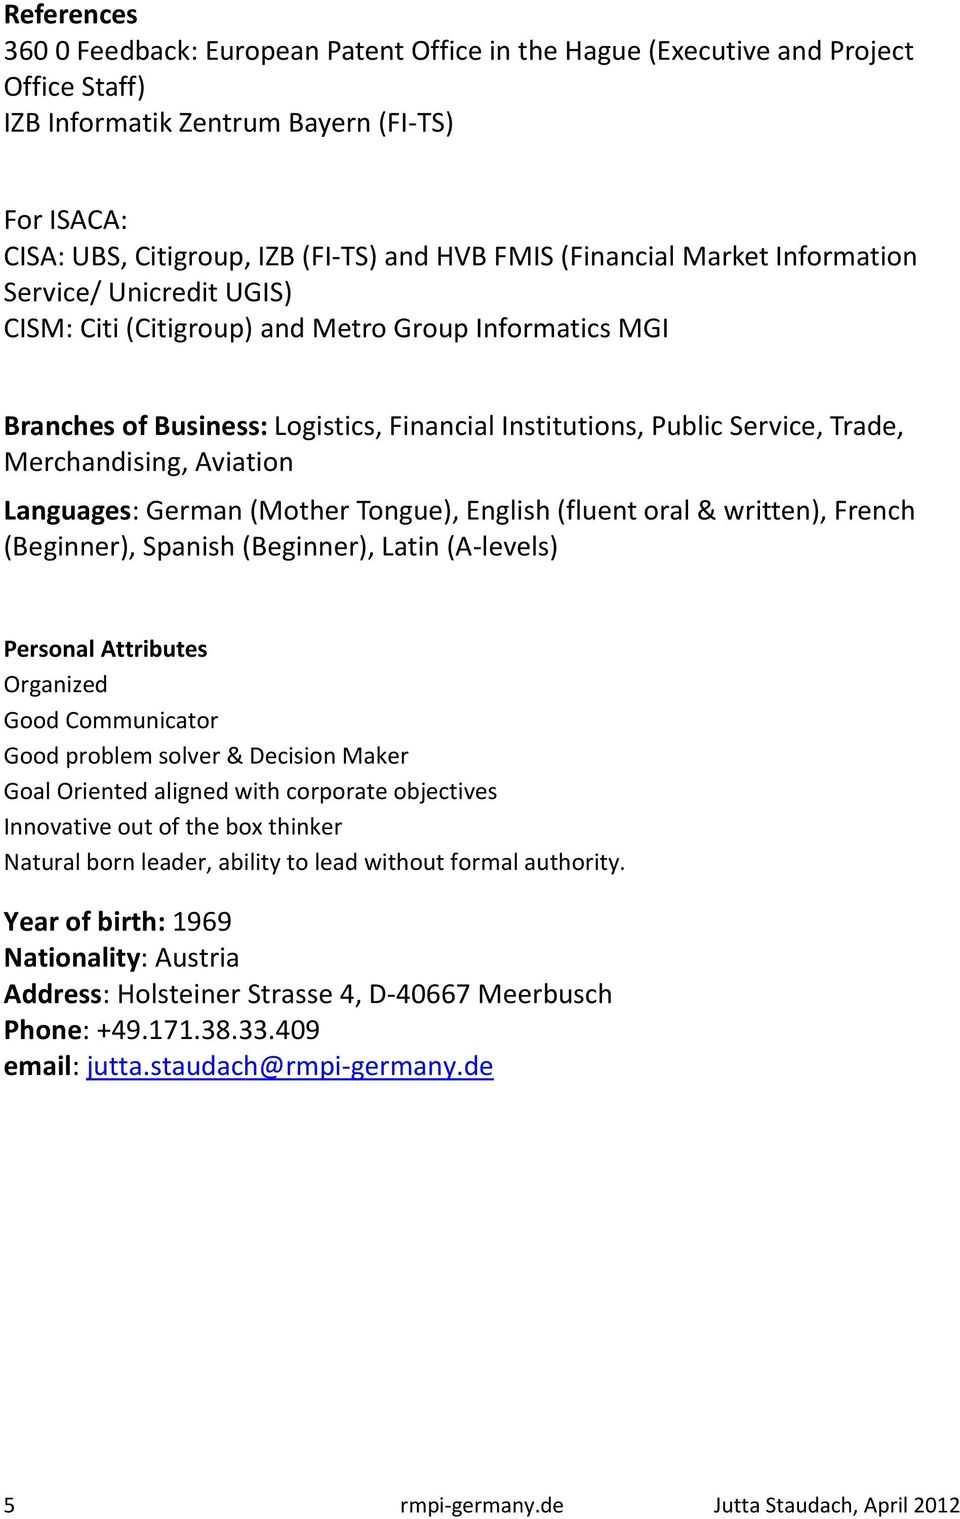 Merchandising, Aviation Languages: German (Mother Tongue), English (fluent oral & written), French (Beginner), Spanish (Beginner), Latin (A-levels) Personal Attributes Organized Good Communicator